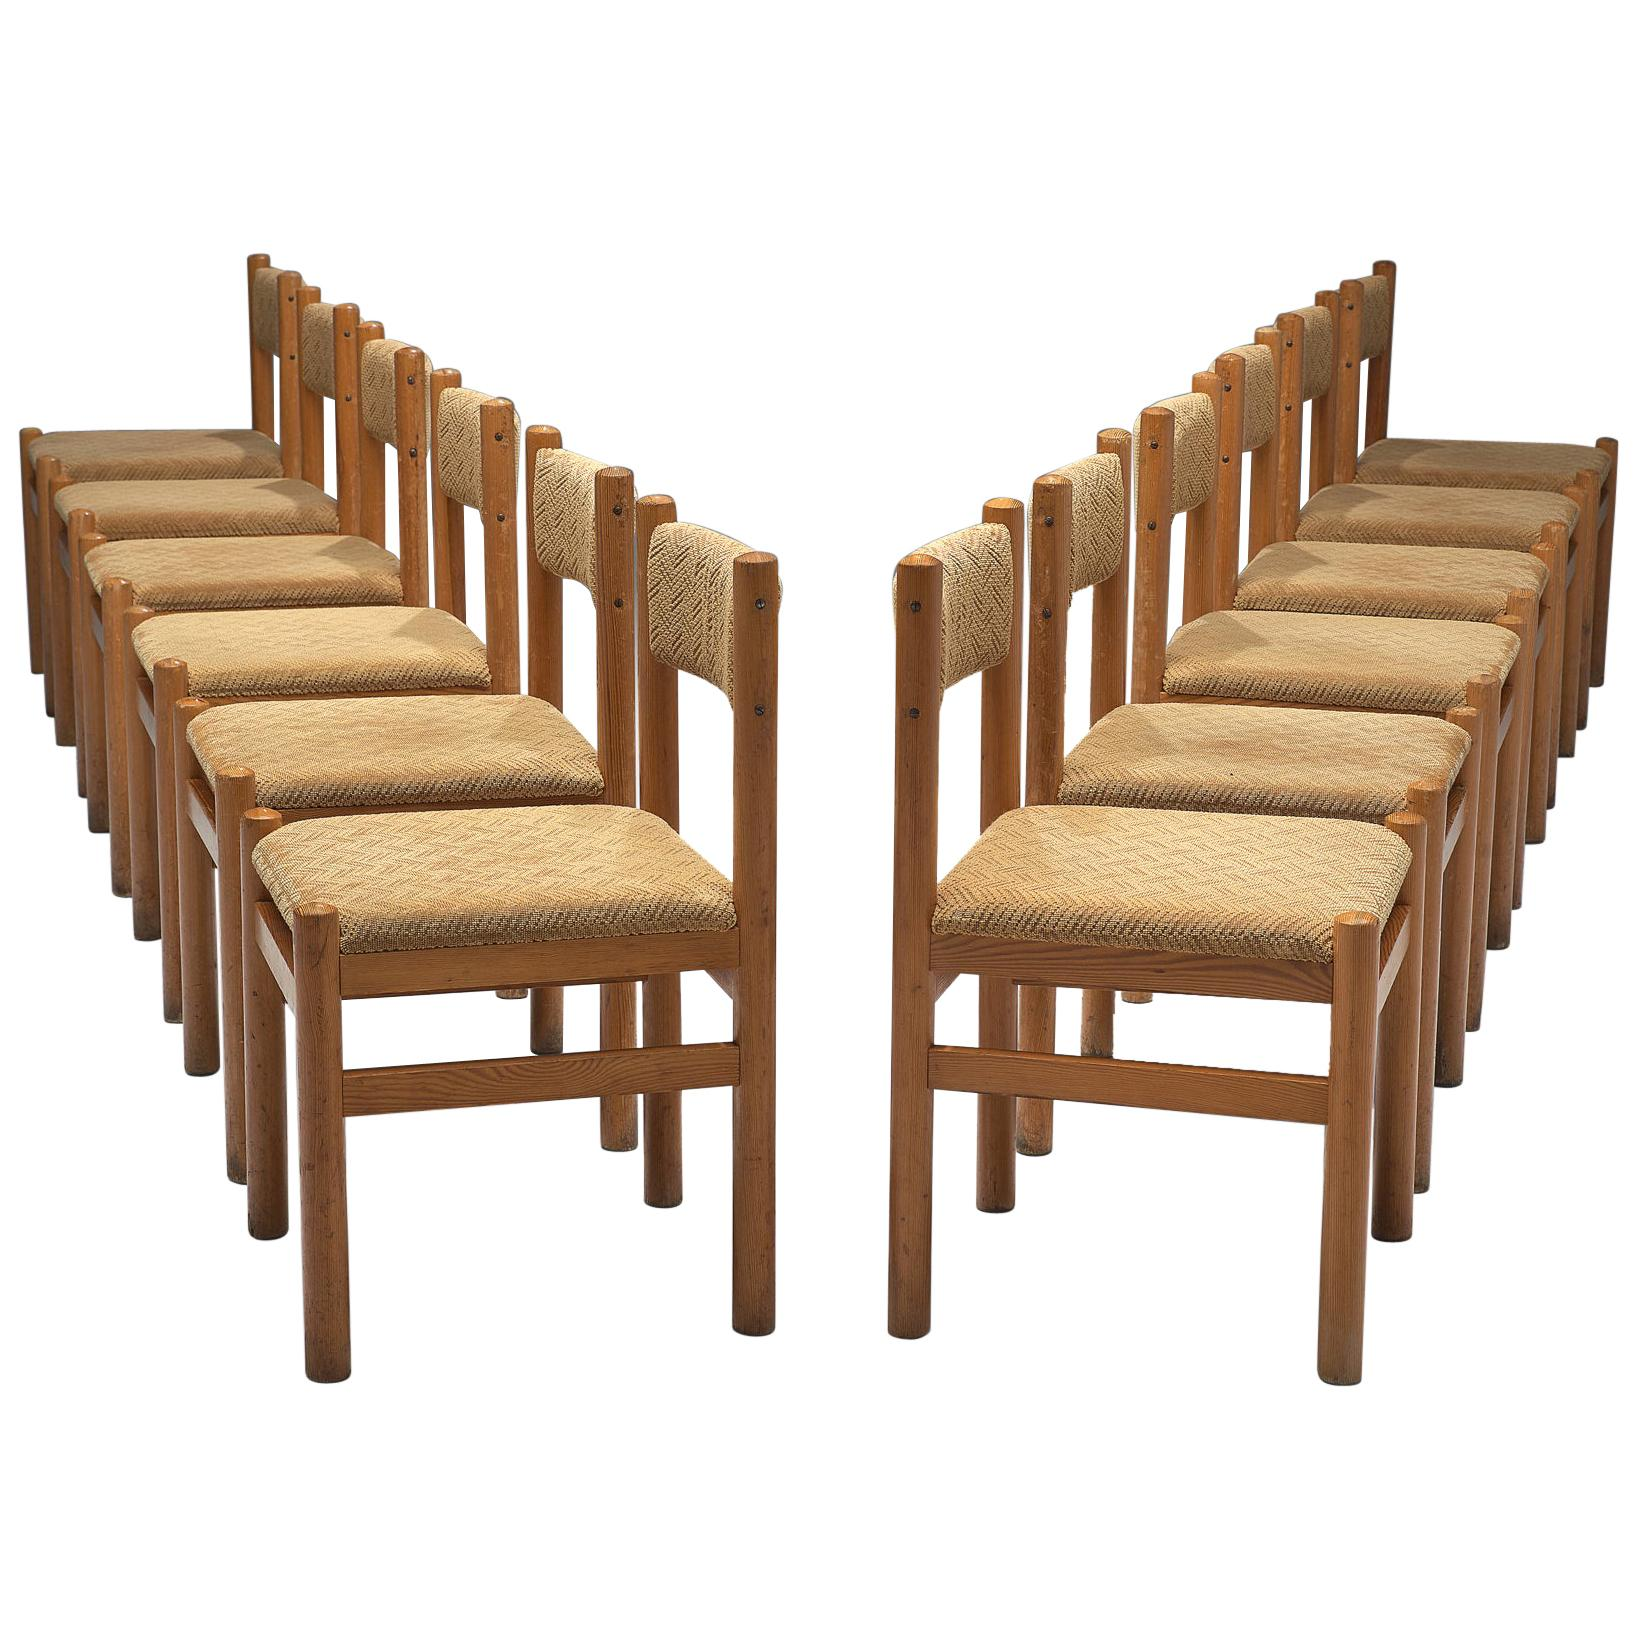 Dining Chairs in Pine and Beige Upholstery